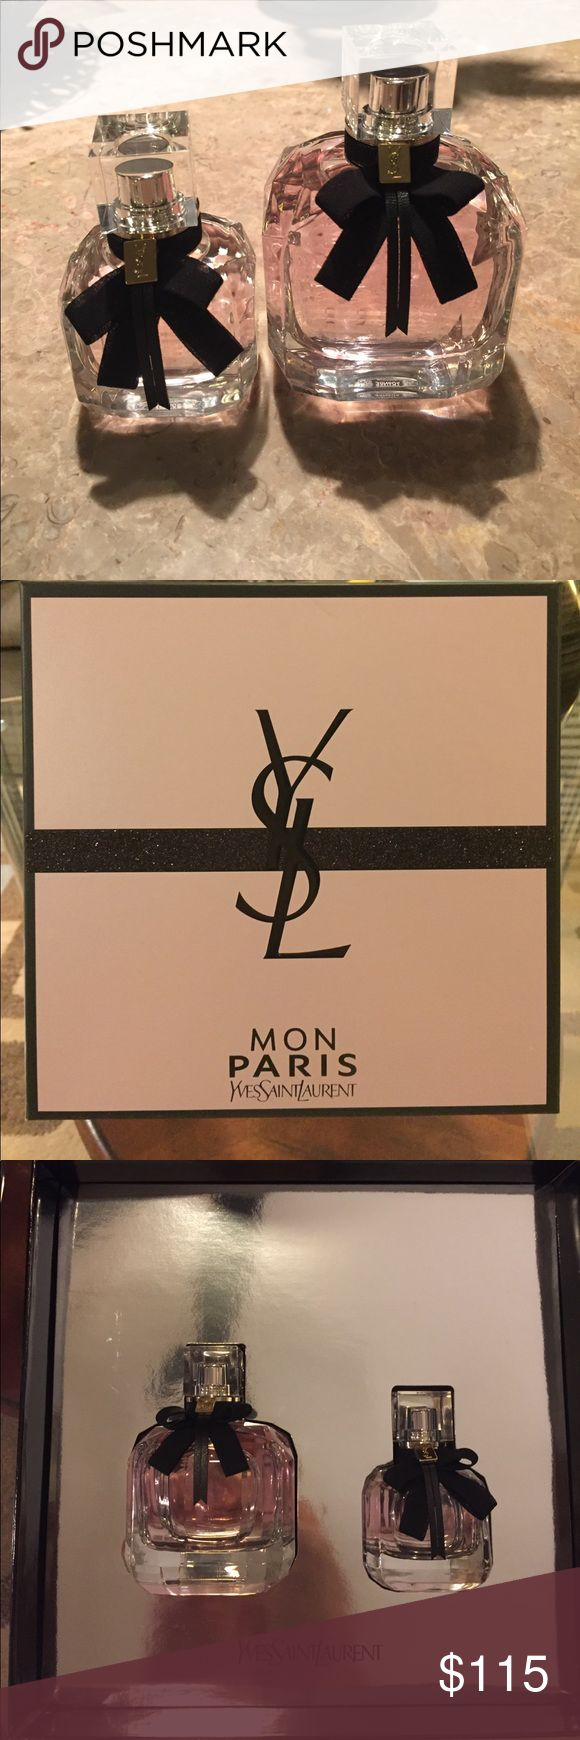 🔥SALE🔥Yves Saint Laurent Mon Paris Eau De Parfum Yves Saint Laurent Mon Paris eau de parfum! 💝 BRAND NEW 🎁 3oz bottle & 1oz bottle ♥️ The perfect gift 😊 Delightful scent 🌹🌹🌹 GREAT PRICE. . . WON'T LAST LONG!! 🌻 💲PRICED TO SELL QUICKLY!! 💰 🔥1 DAY SALE🔥 Yves Saint Laurent Other